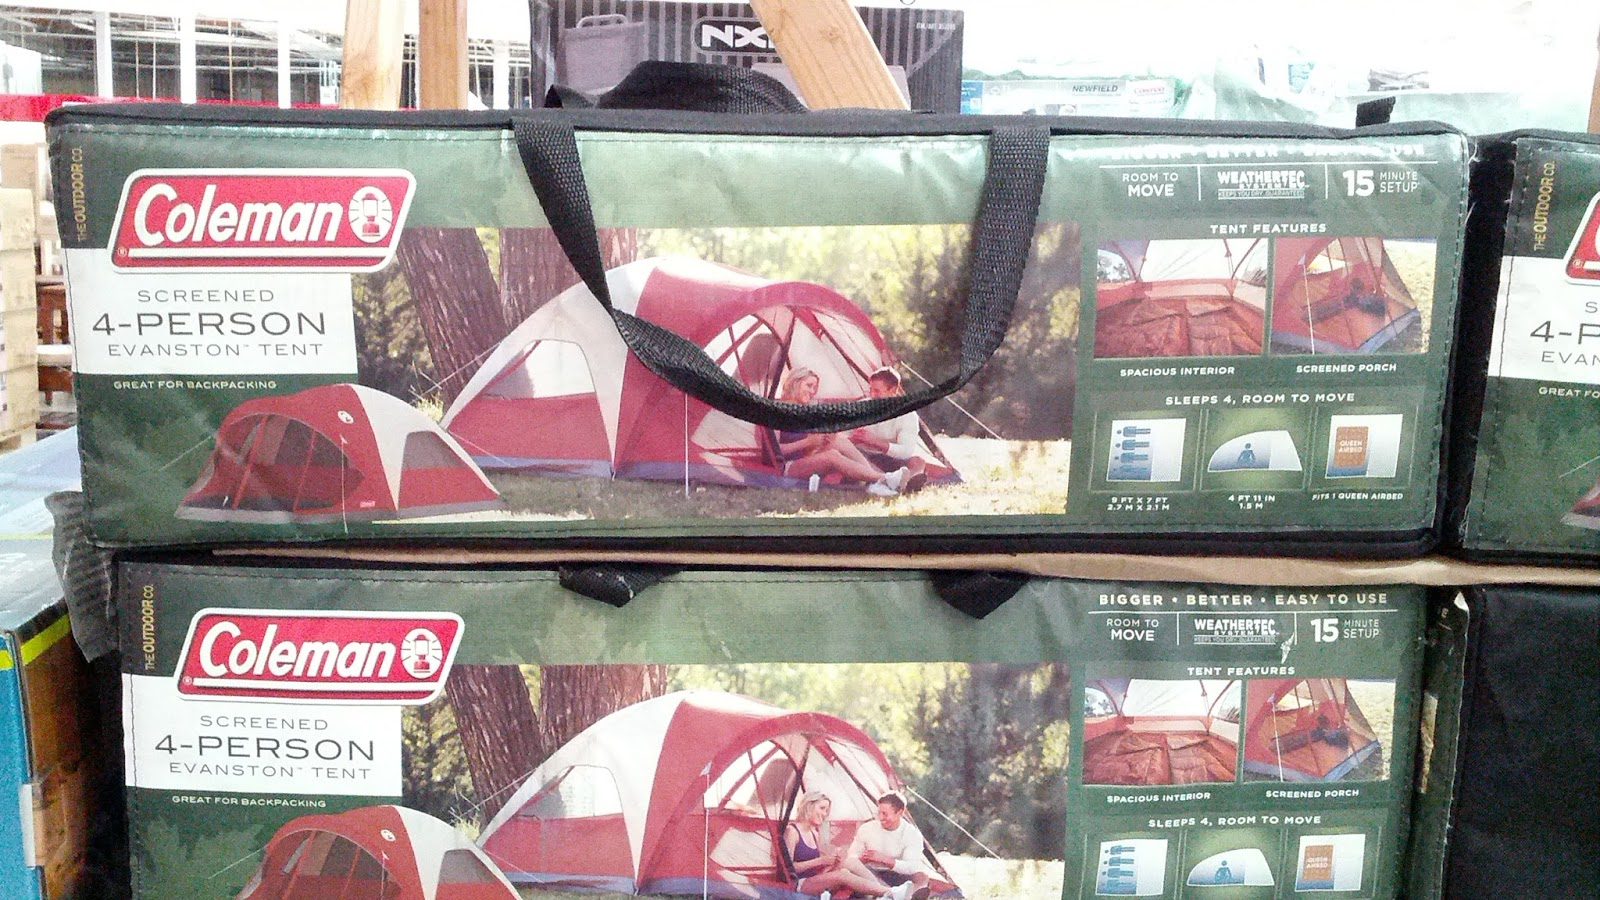 Go c&ing with the Coleman Screened 4 person Dome Evanston Tent & Coleman Screened 4-person Dome Evanston Tent | Costco Weekender